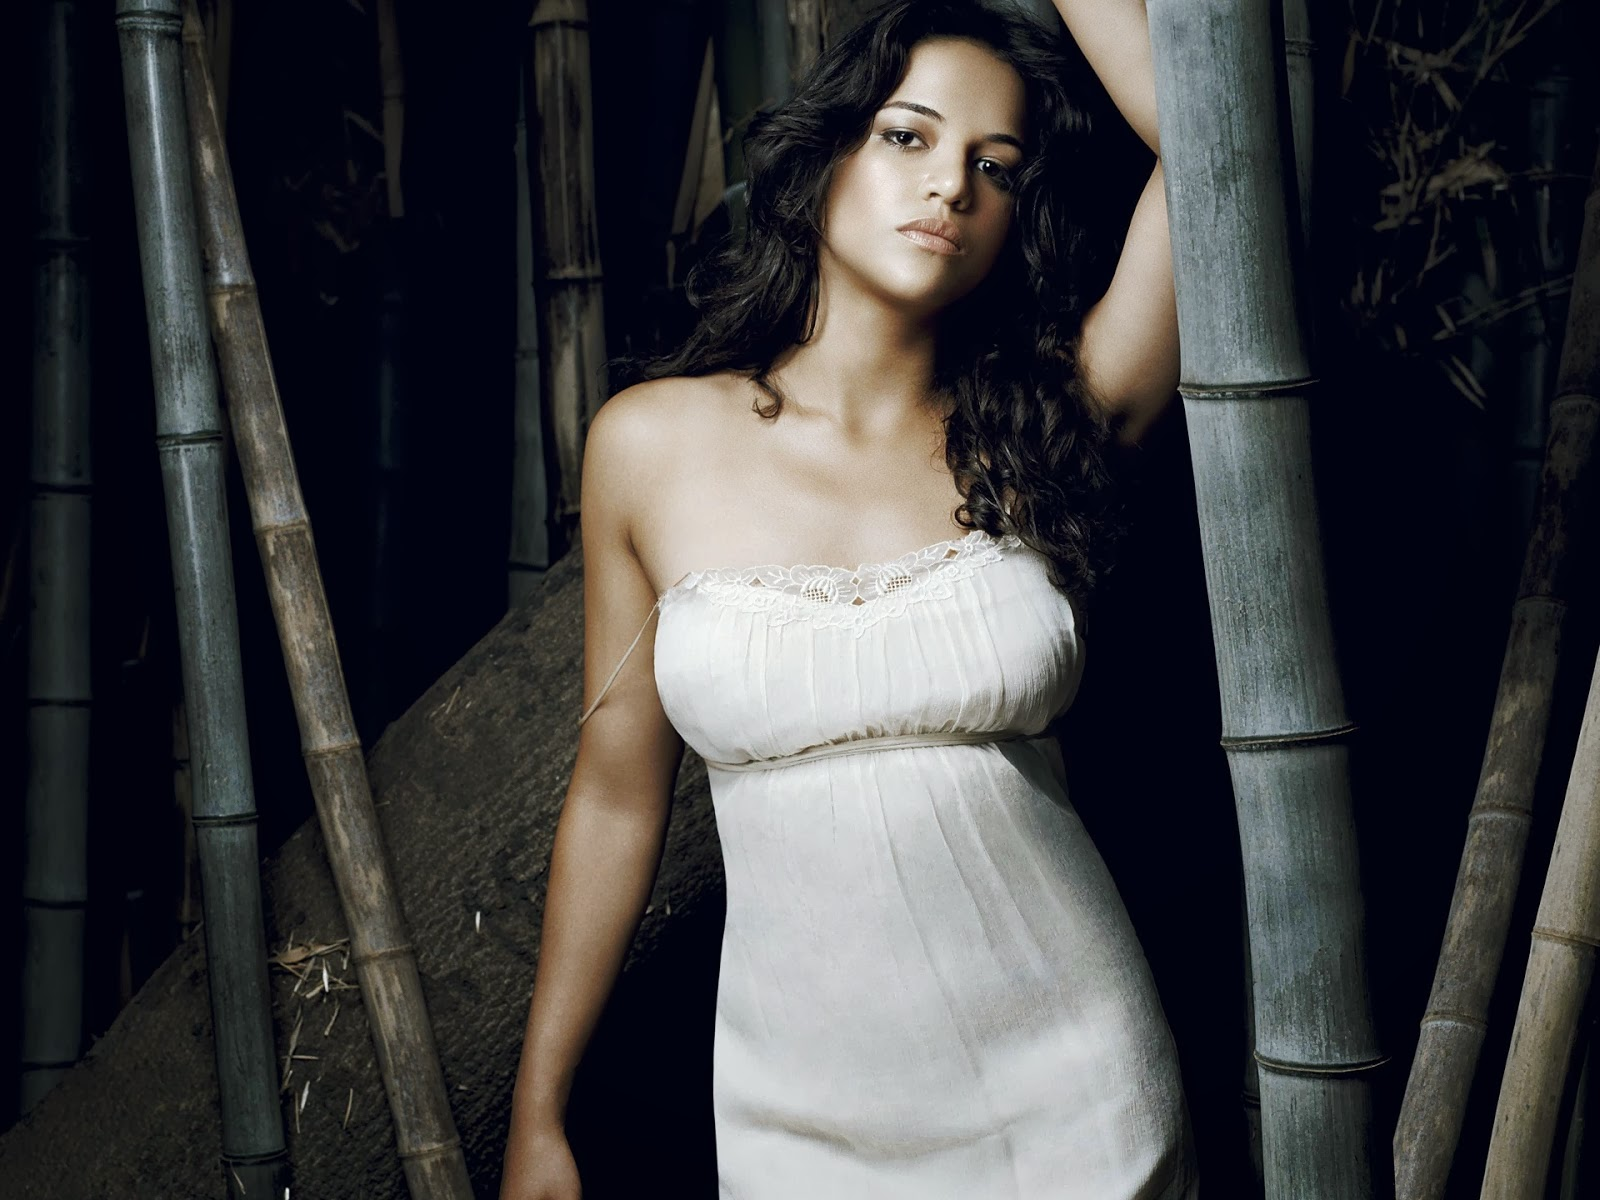 Michelle Rodriguez Giving Hot Pose 9